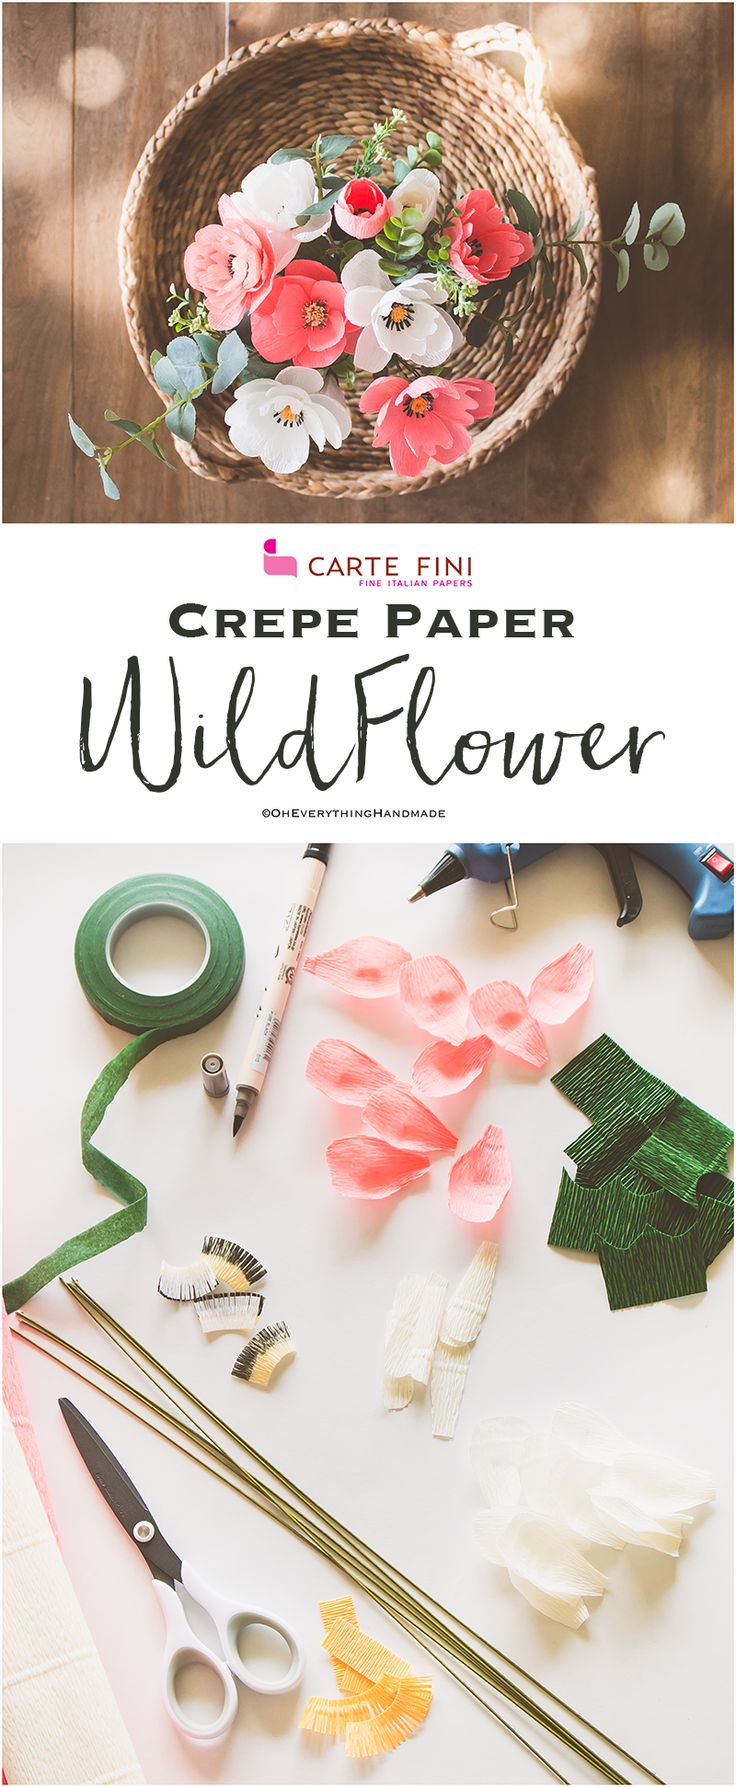 A HUGE list of Flower Tutorials for you to sink your teeth into. DIY Crafts Ideas galore for Mother's Day Flowers A Wildlfower bouquet by Oh everything Handmade - Make Her Some Fabulous Mothers Day Flowers That Last Forever! via @hearthandmade